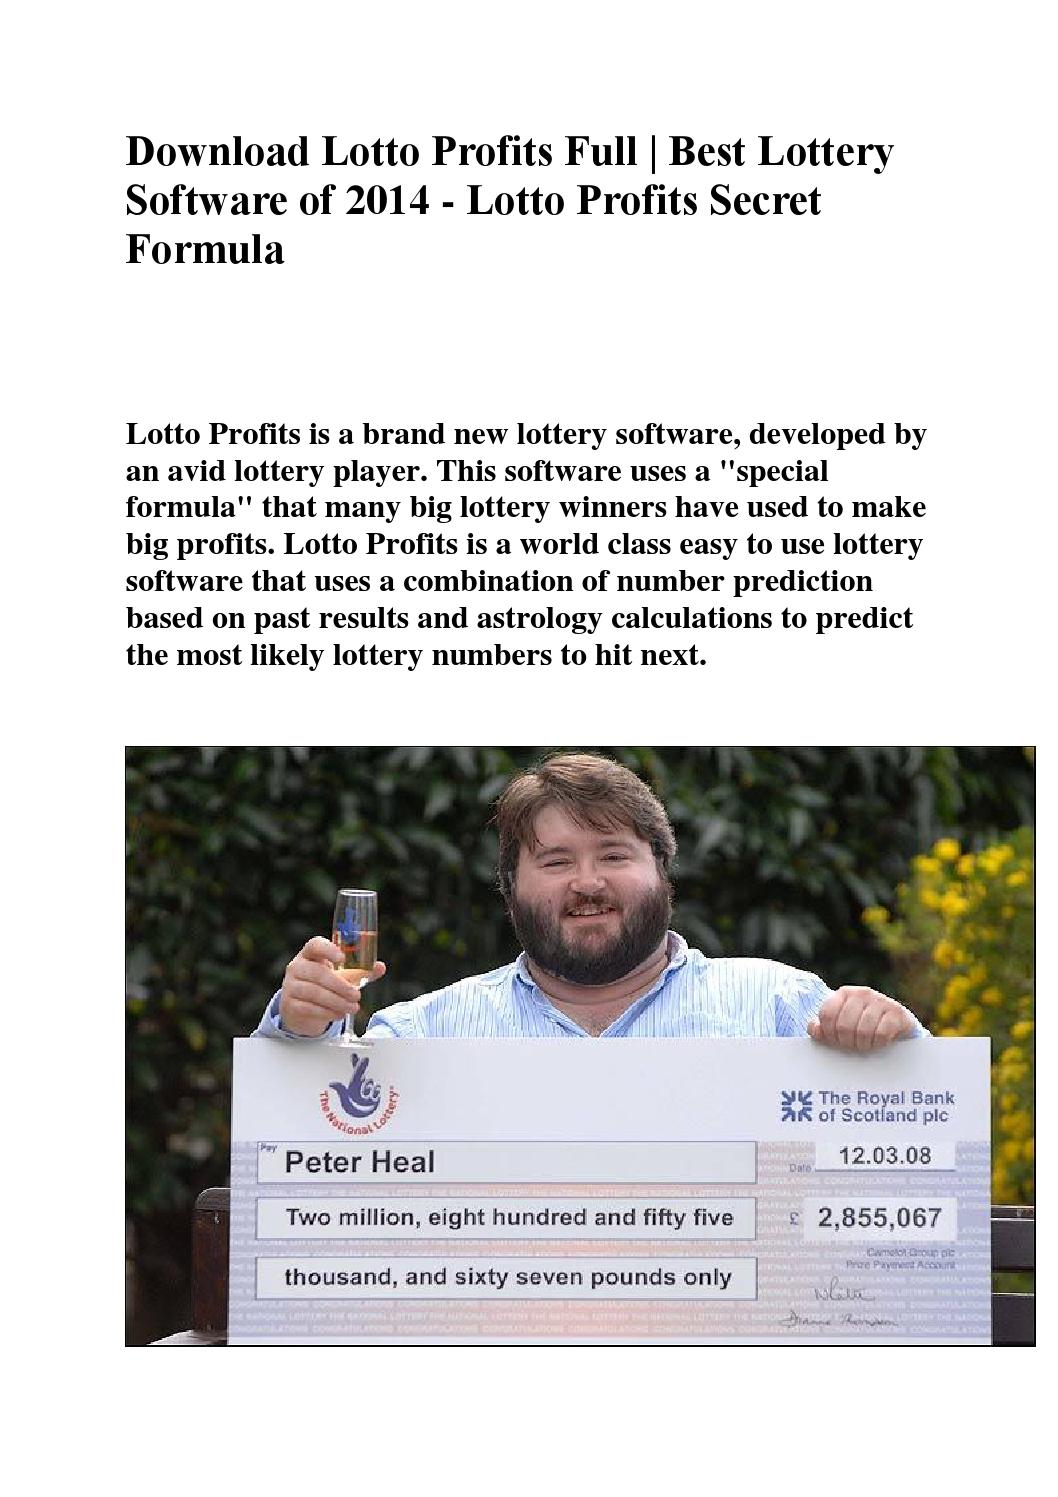 Download lotto profits full best lottery software of 2014 lotto